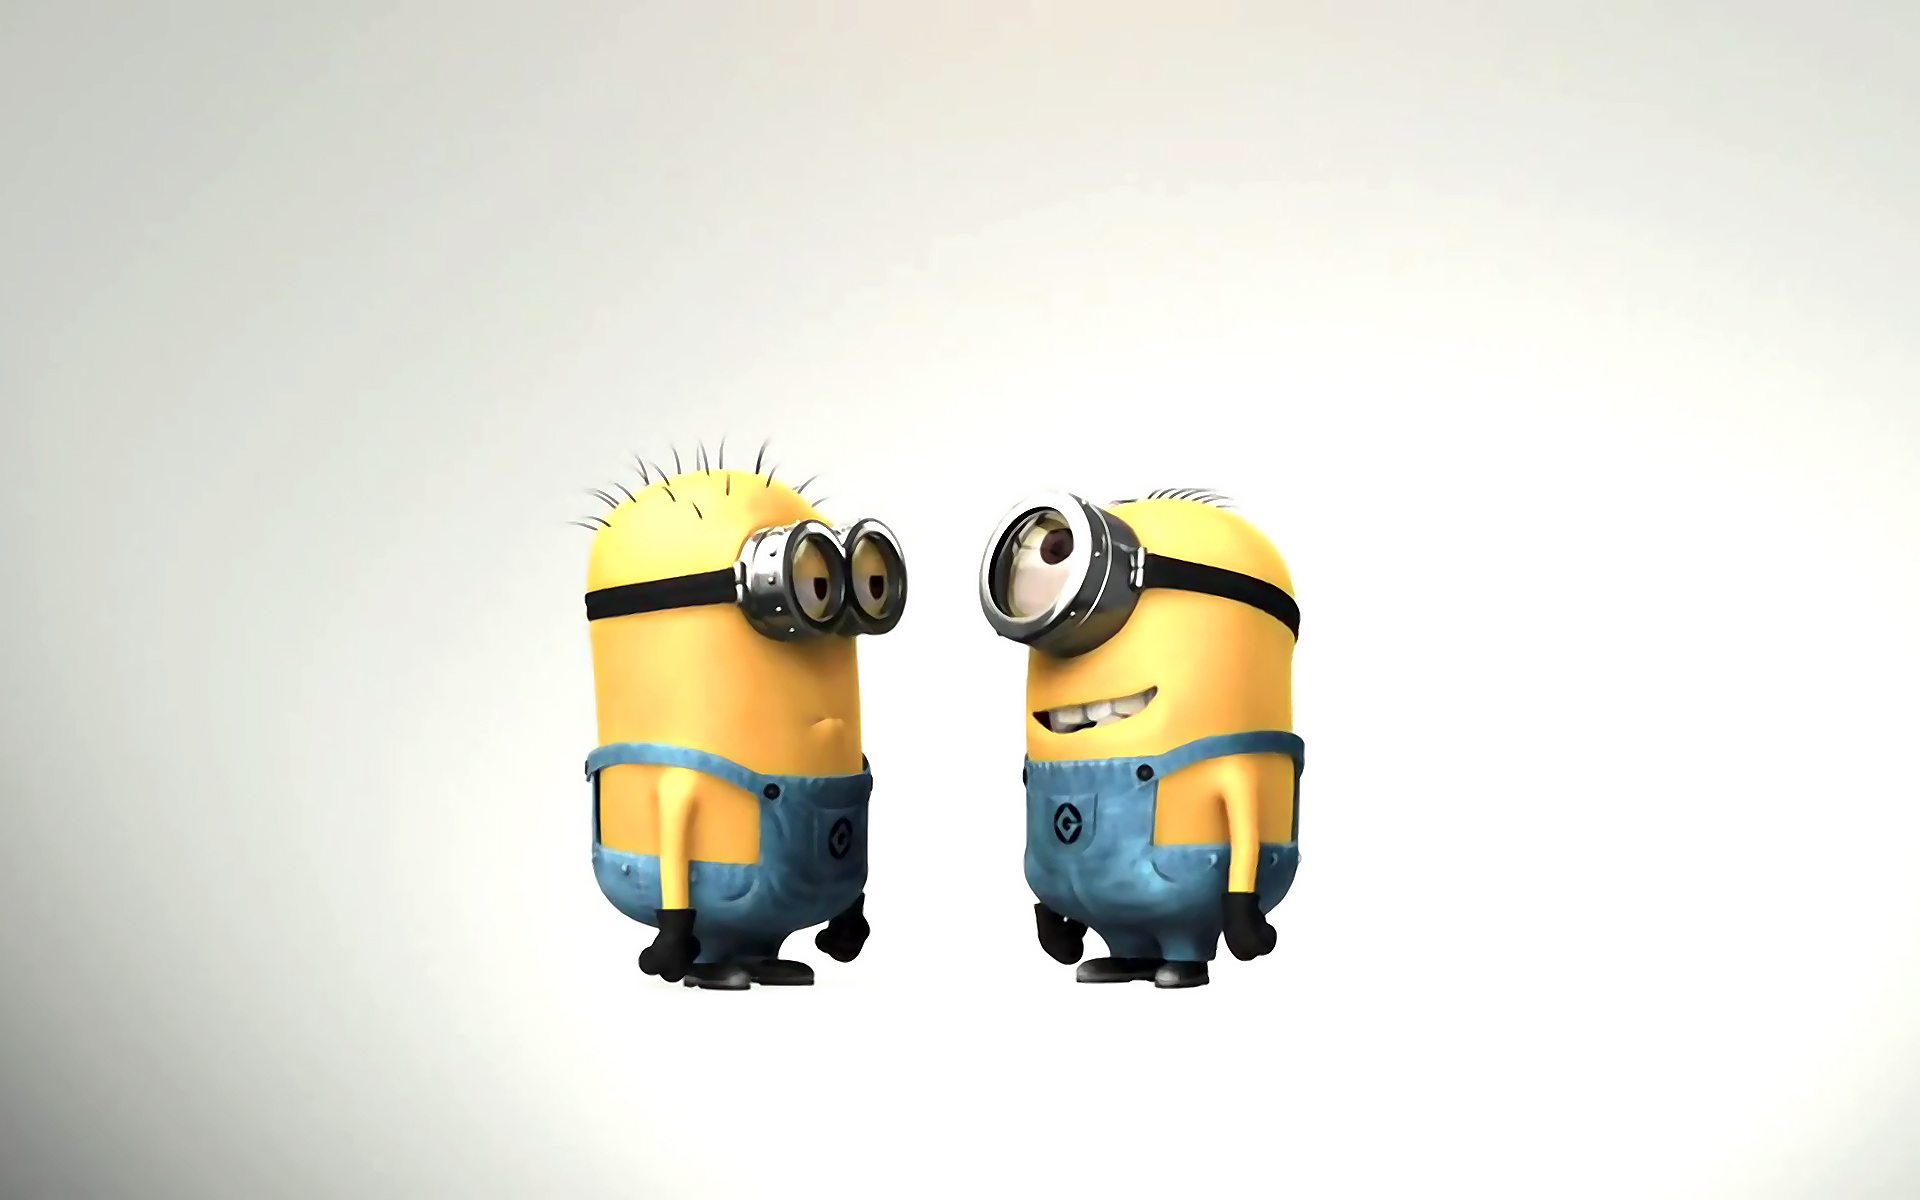 Despicable Me Minions wallpapers | Despicable Me Minions ...